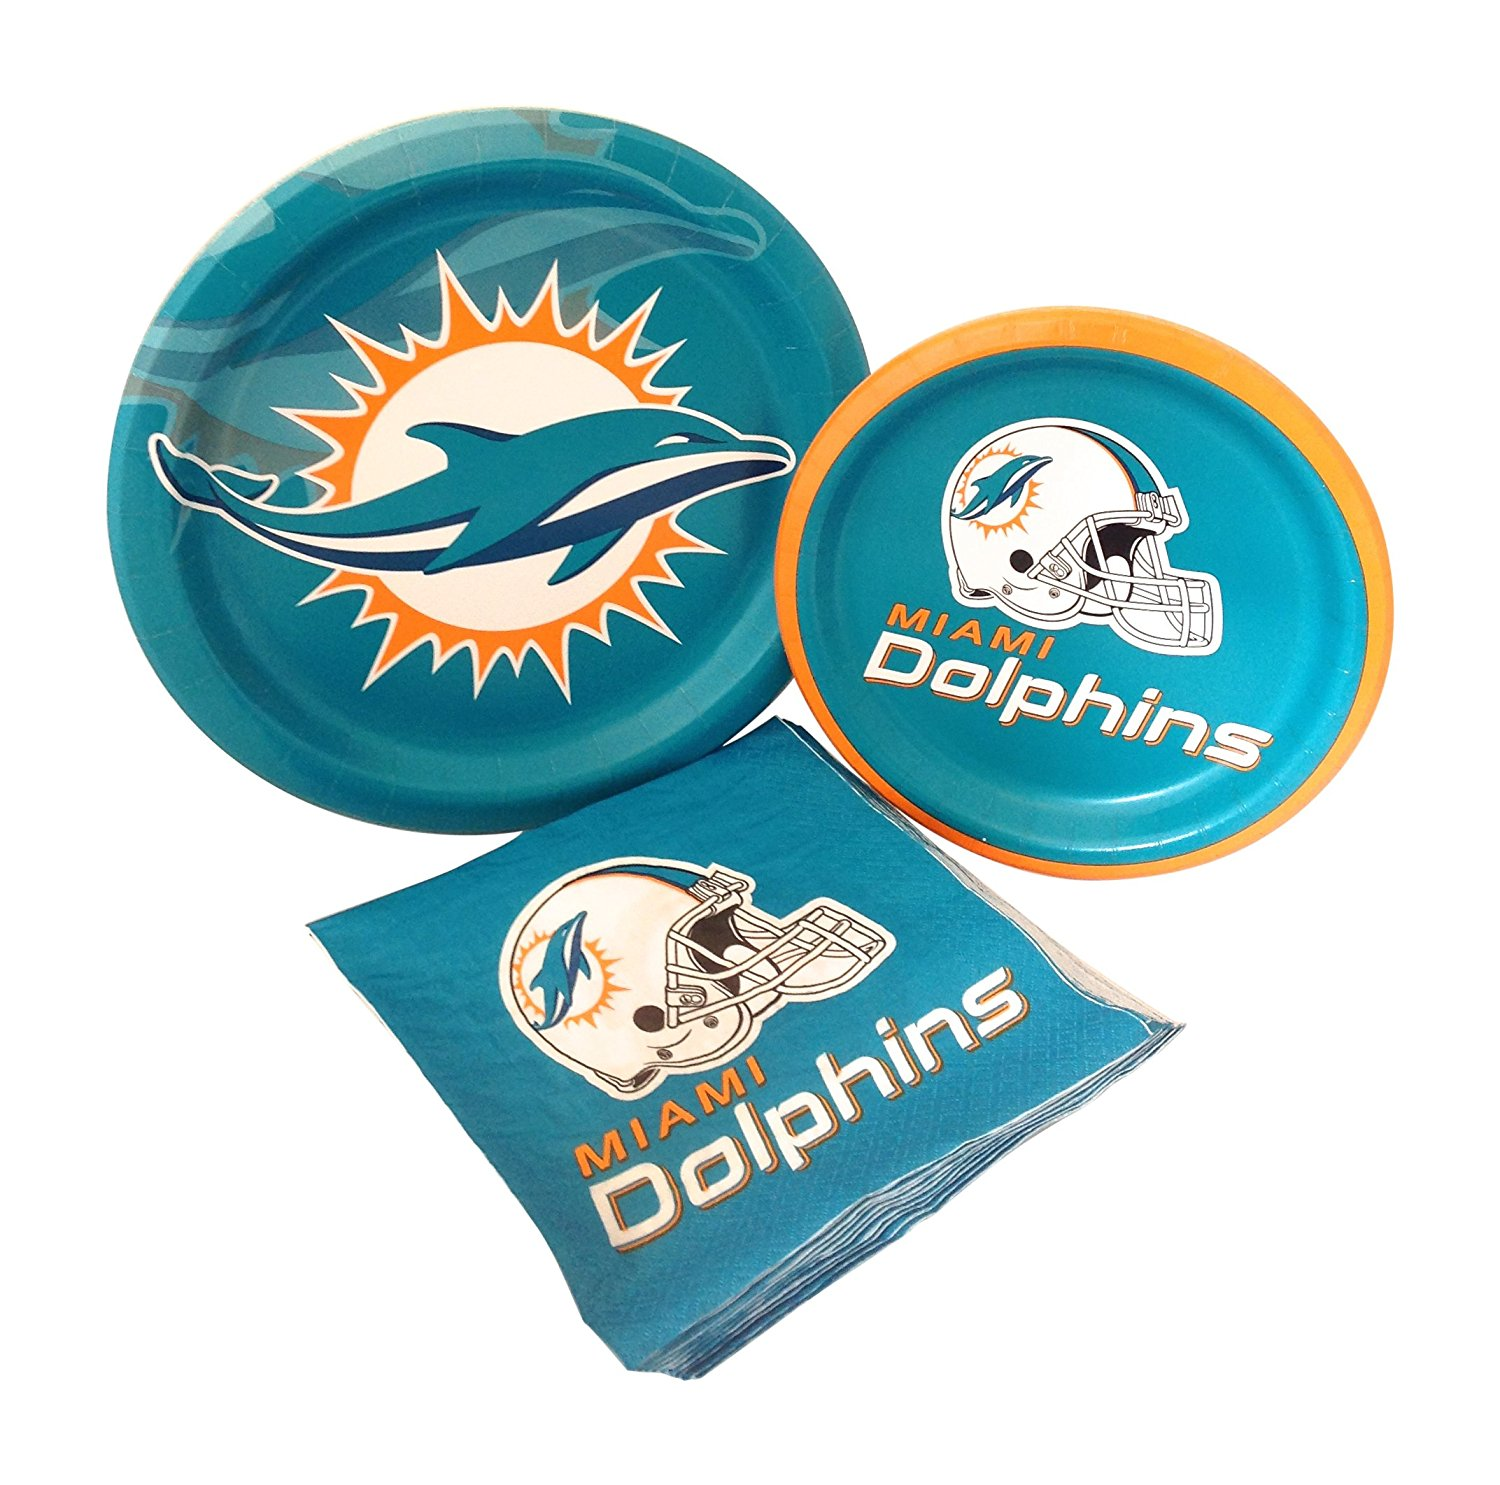 2389c670 Get Quotations · Miami Dolphins Football Party Supply Pack! Bundle Includes  Paper Plates & Napkins for 8 Guests